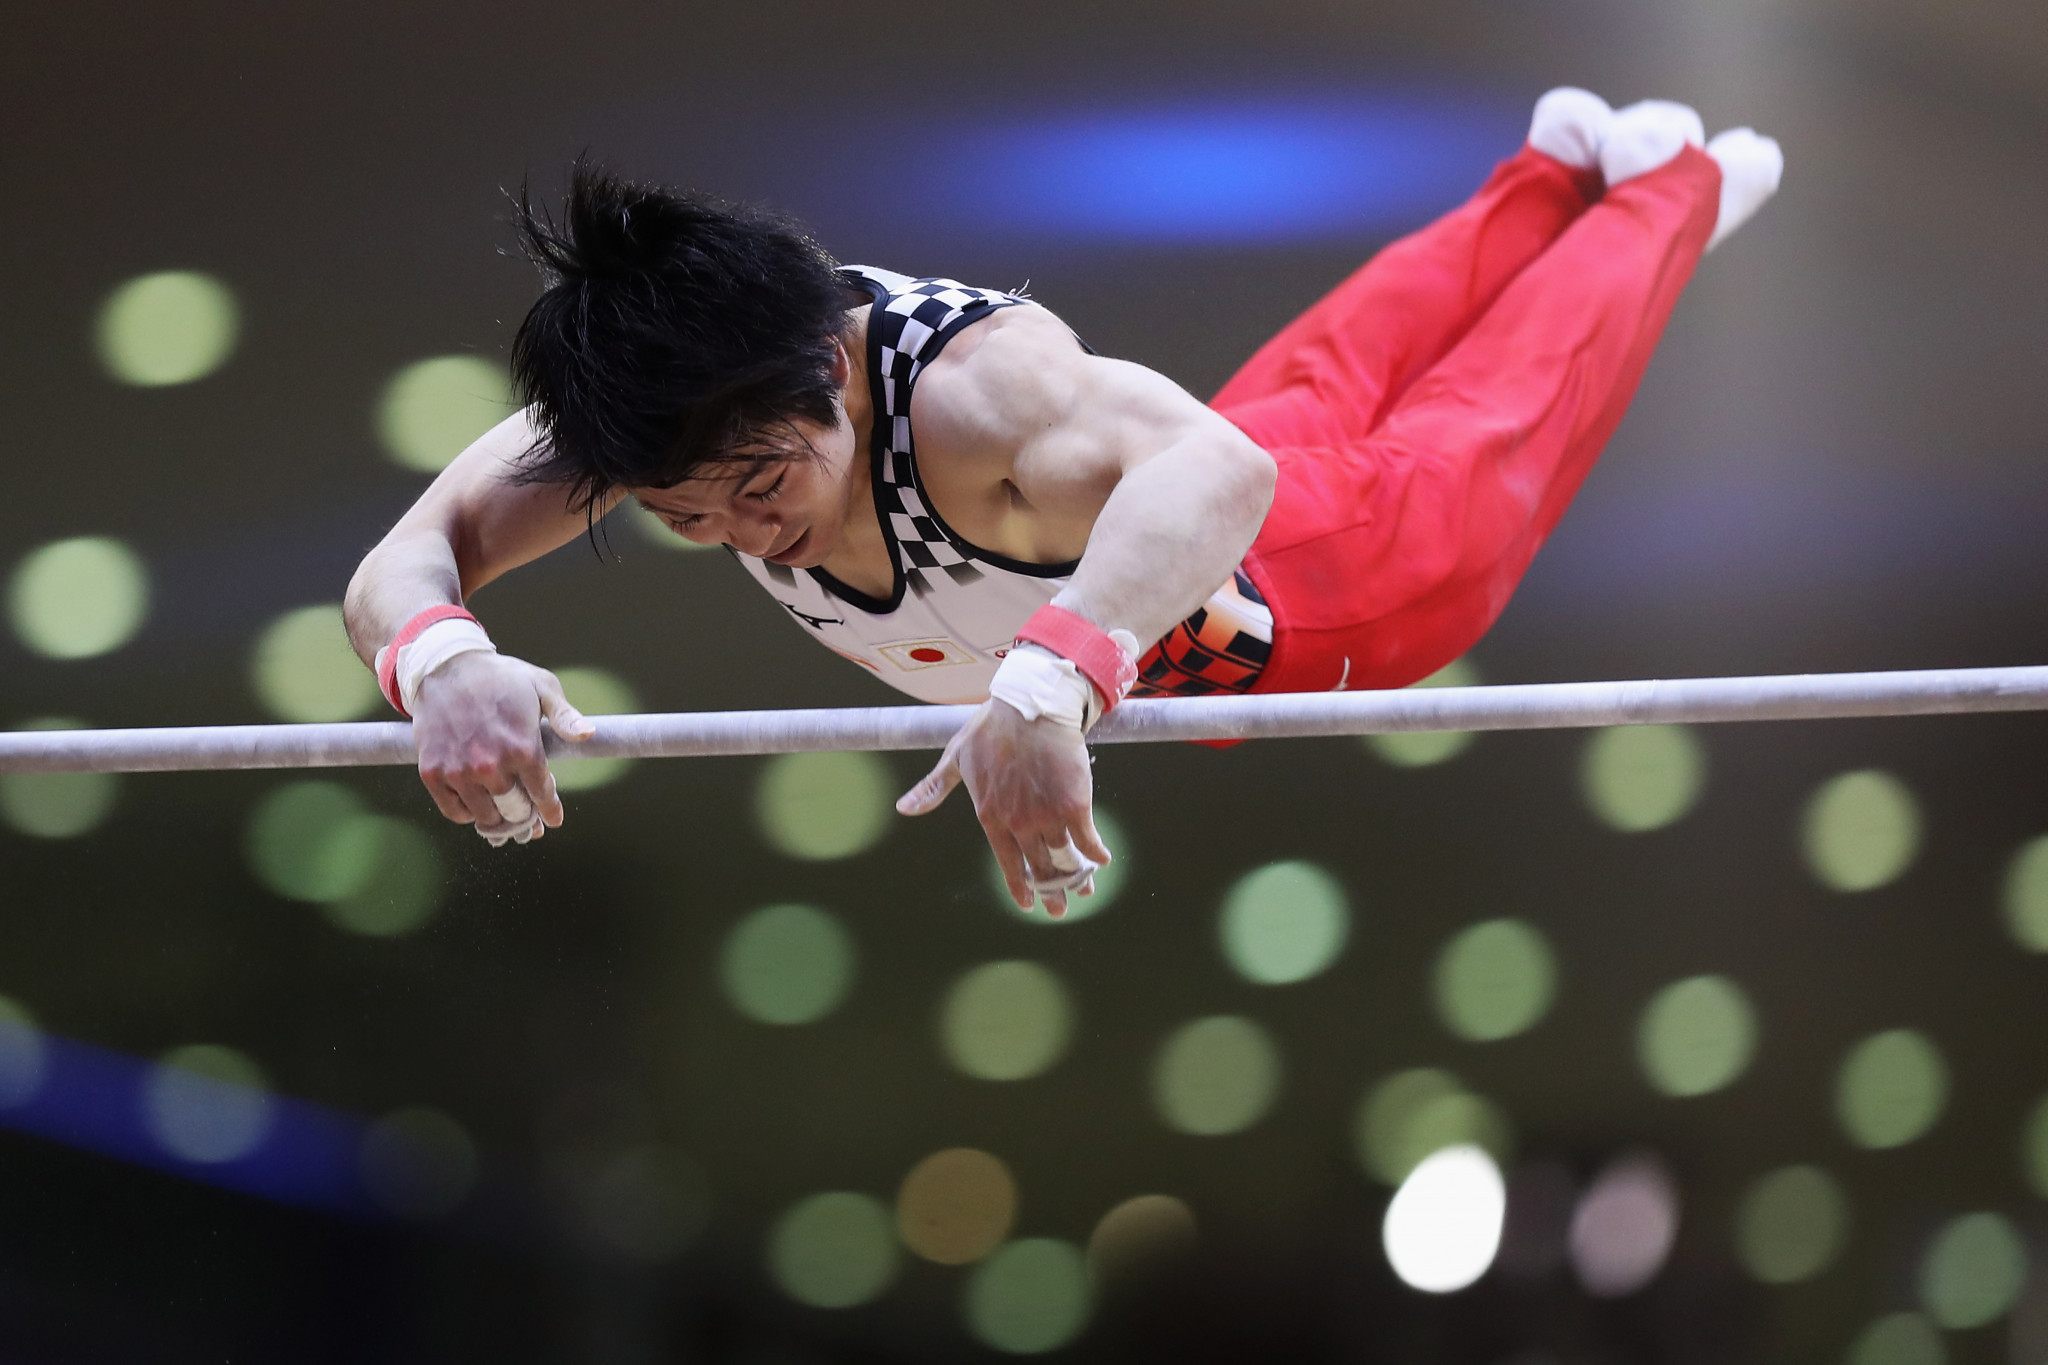 Japan submits bid for 2023 Artistic Gymnastics World Championships in Tokyo